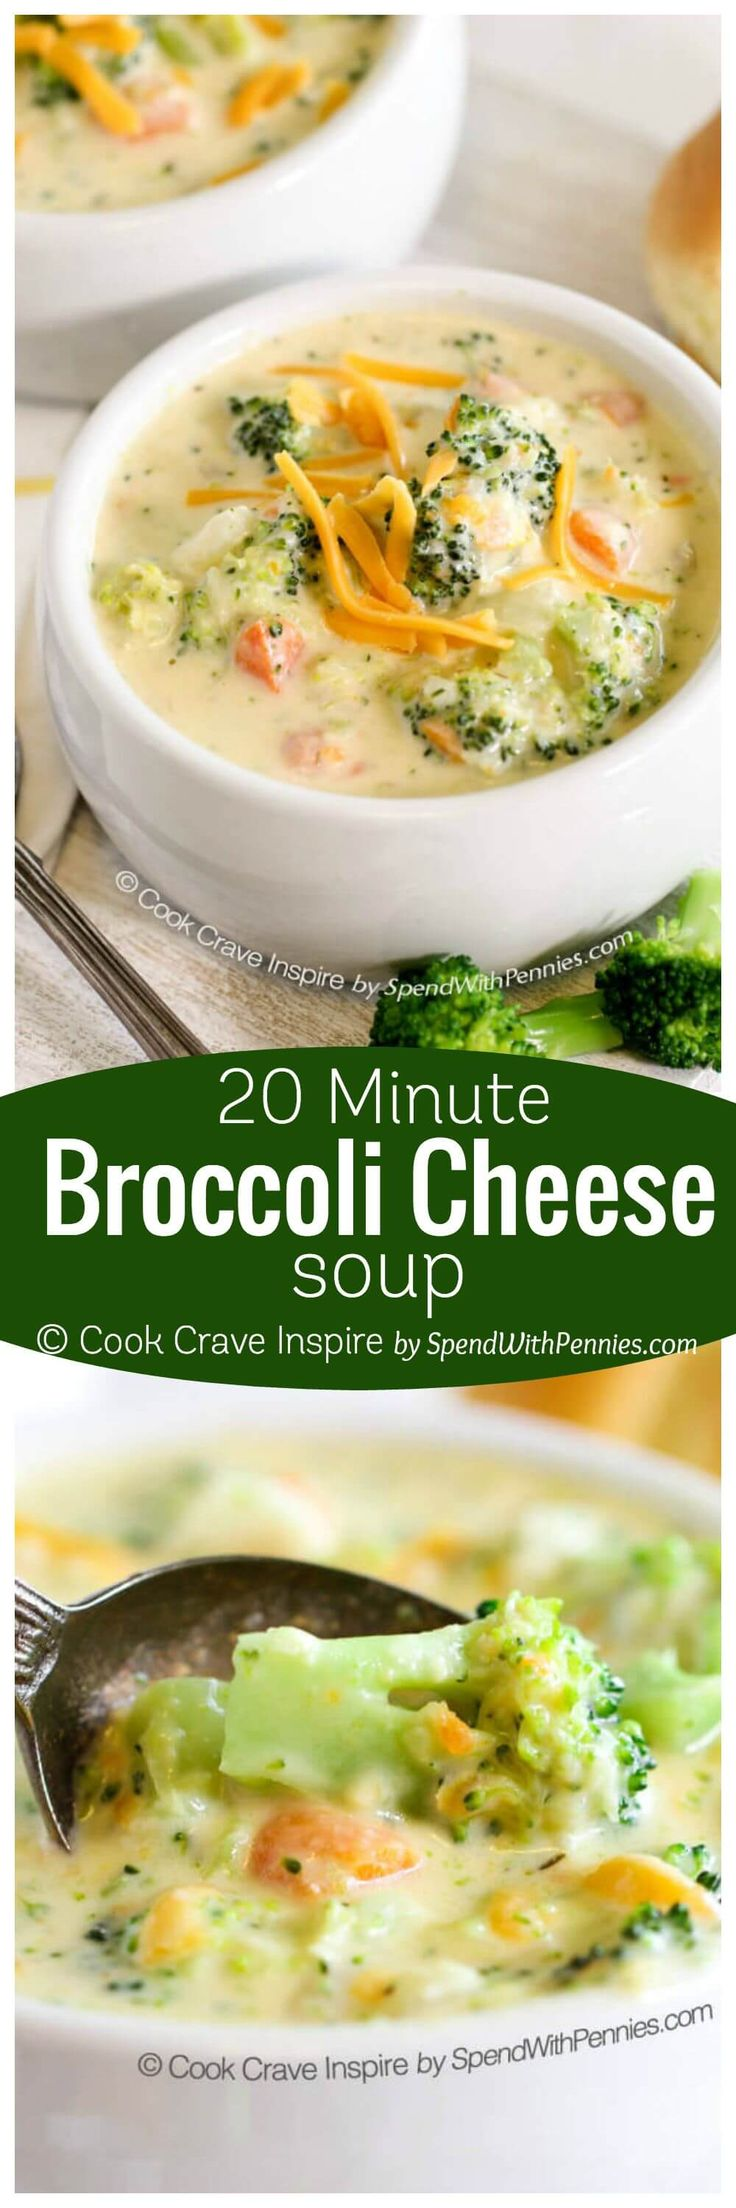 20 Minute Broccoli Cheese Soup! This delicious soup is made from scratch in just…